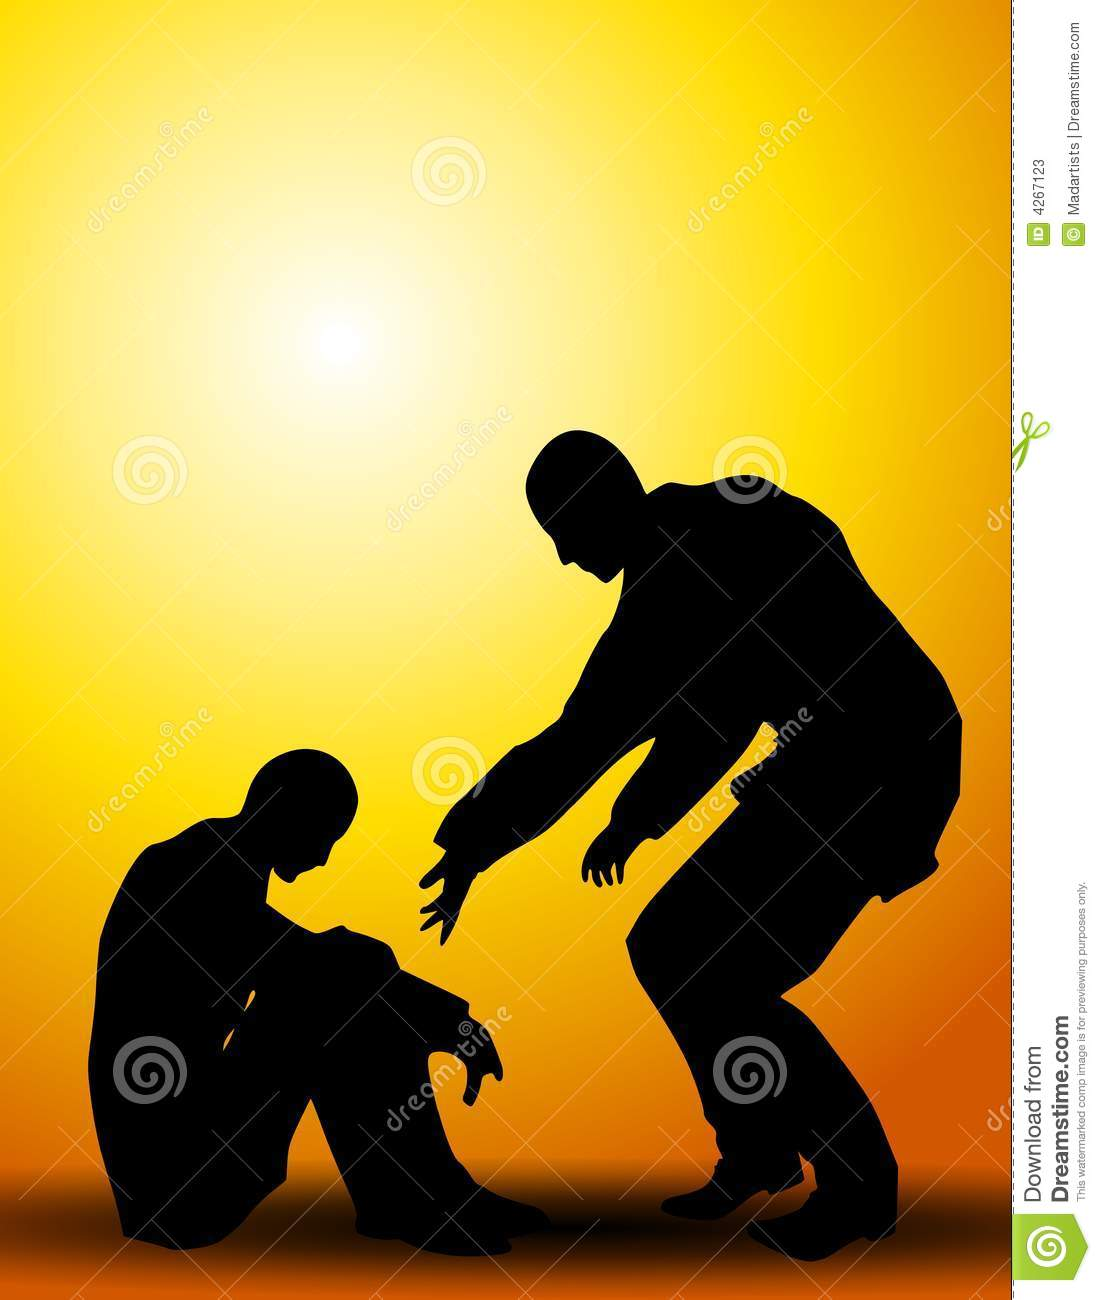 An illustration featuring 2 people as silhouettes set against sunset ...